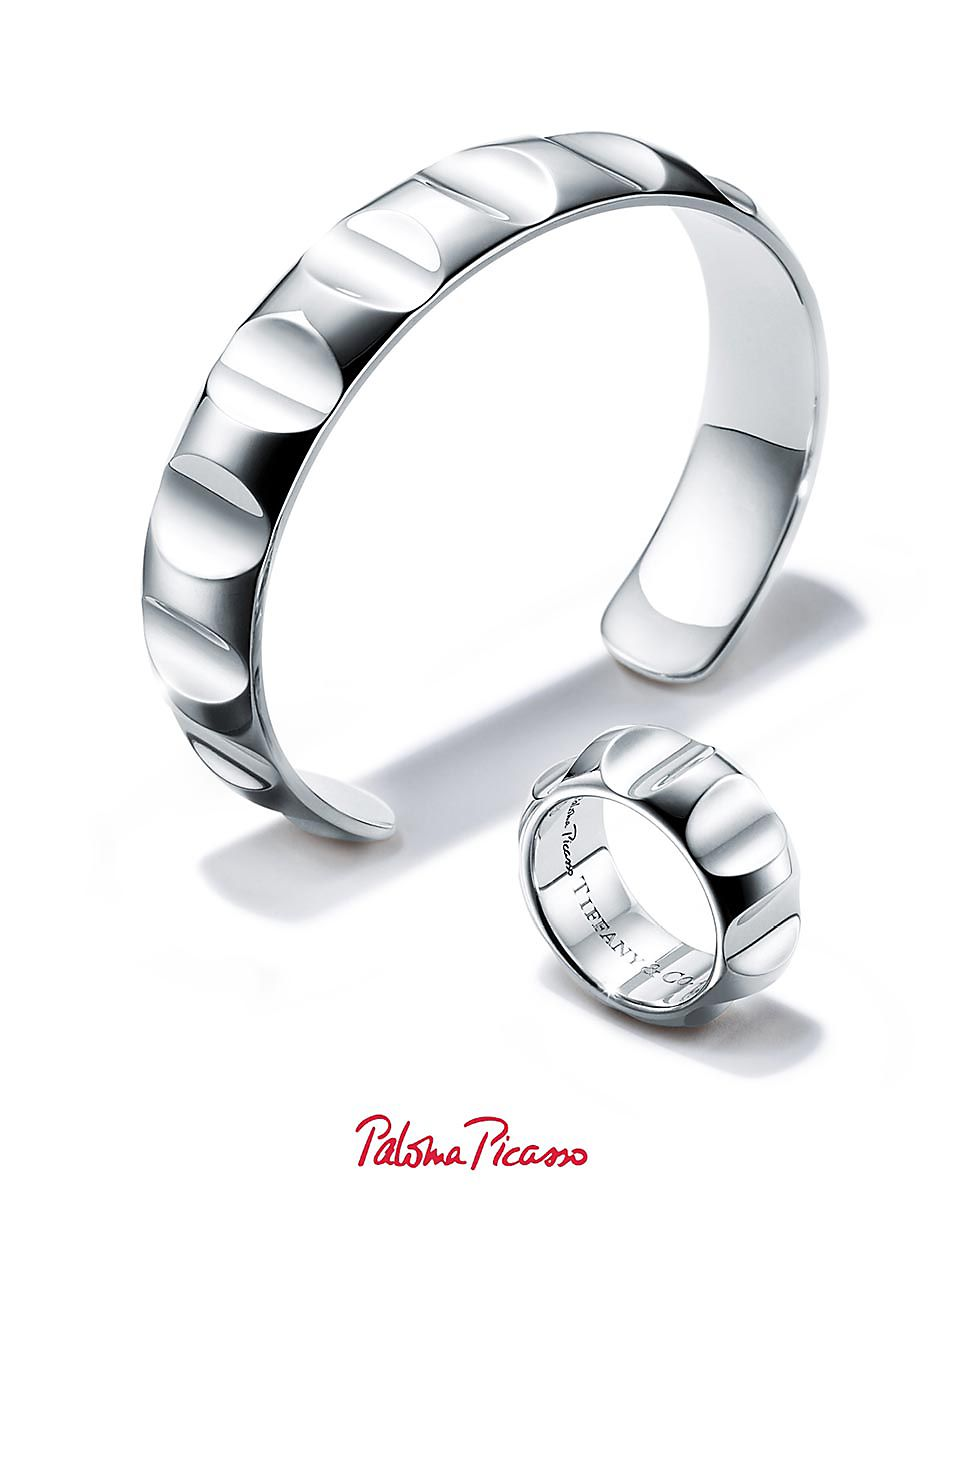 Tiffany Picasso collection